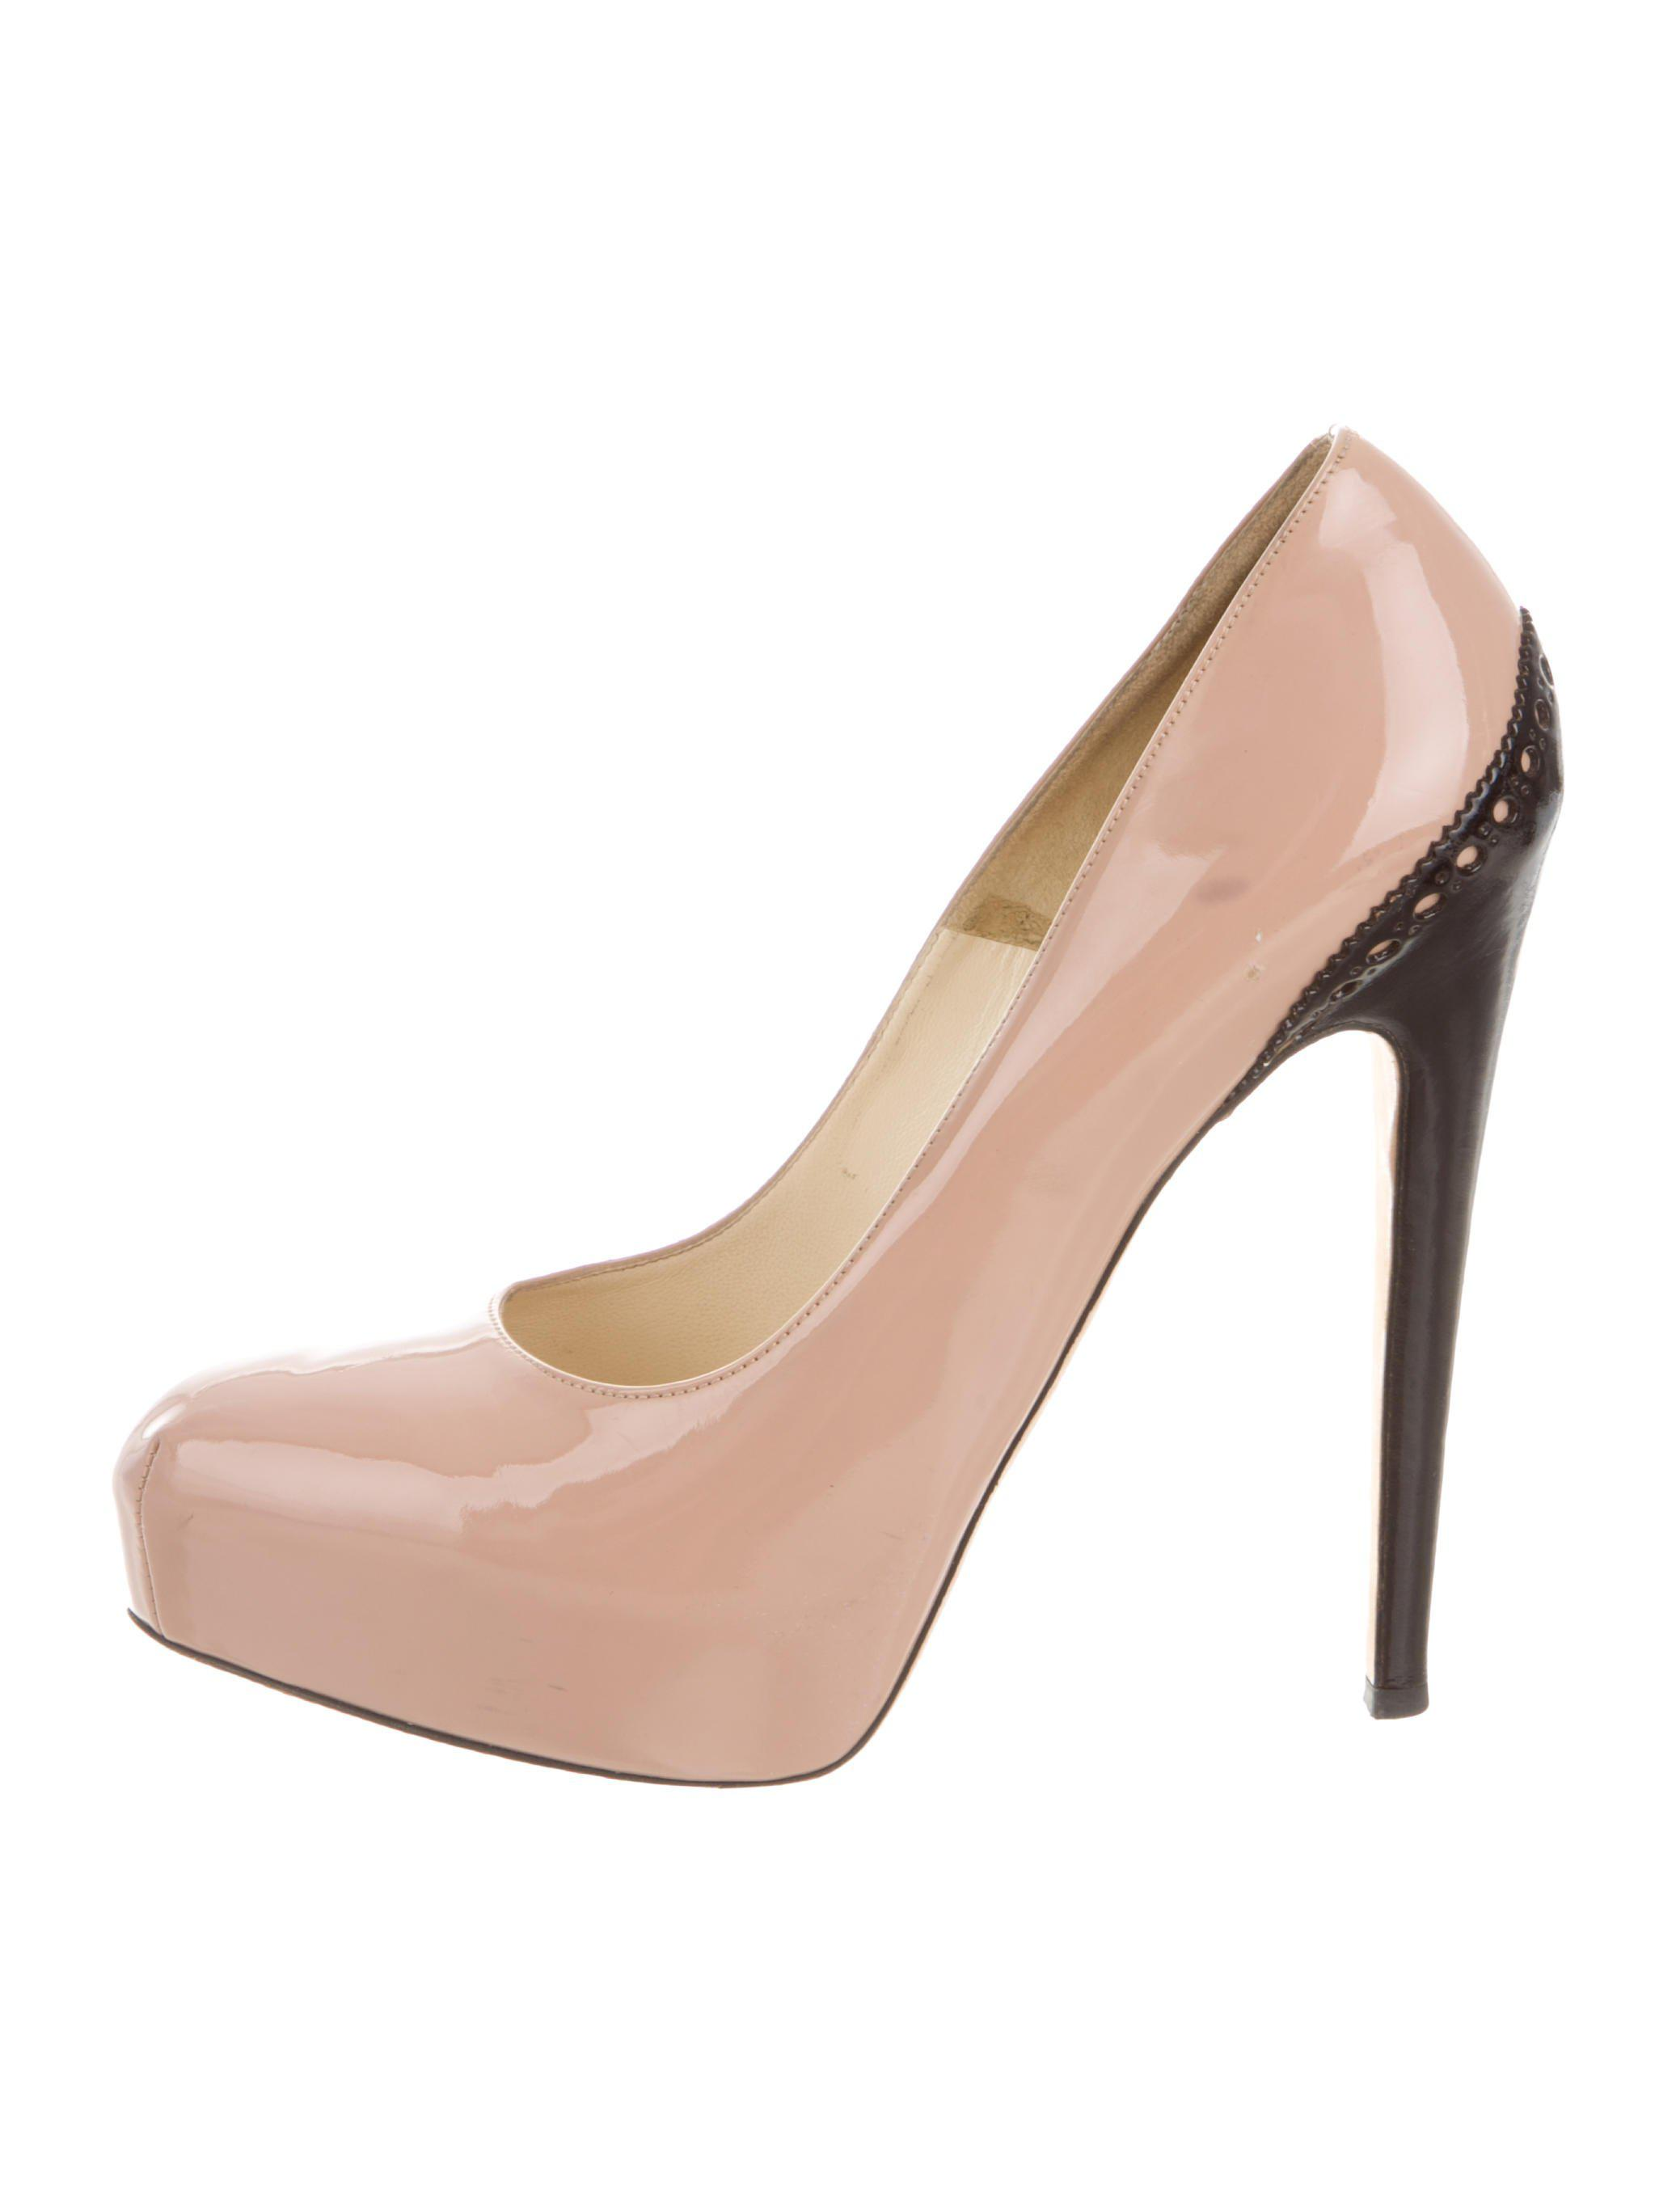 bf00245c370e Lyst - Brian Atwood Pointed-toe Platform Pumps Nude in Natural